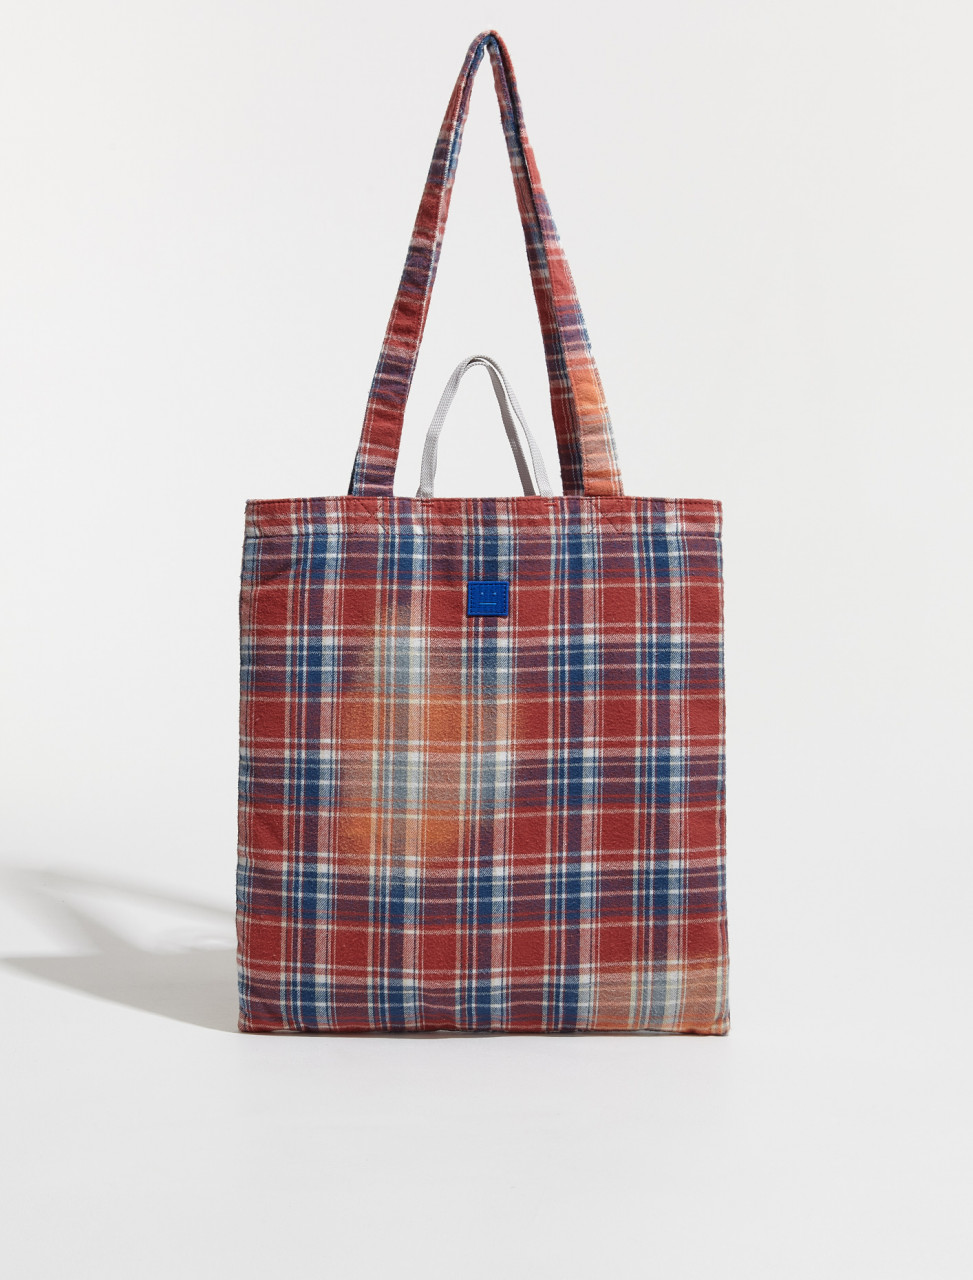 C10095 COG FA UX BAGS000023 ACNE STUDIOS AWA BLEACHED FLANNEL FACE LOGO TOTE BAG IN PINK & BLUE